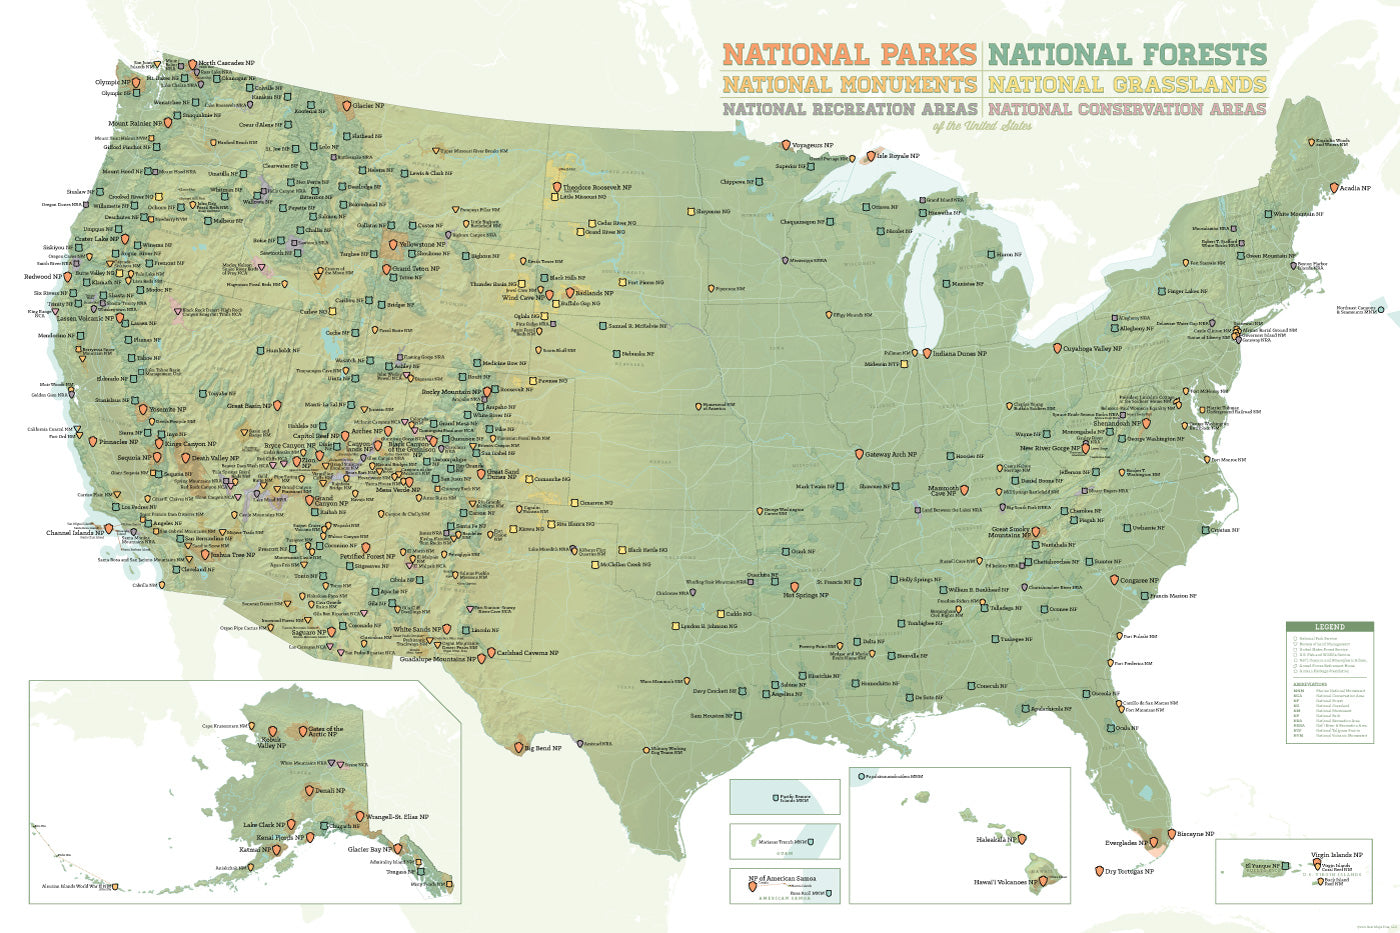 US National Parks Monuments  Forests Map 24x36 Poster  Best